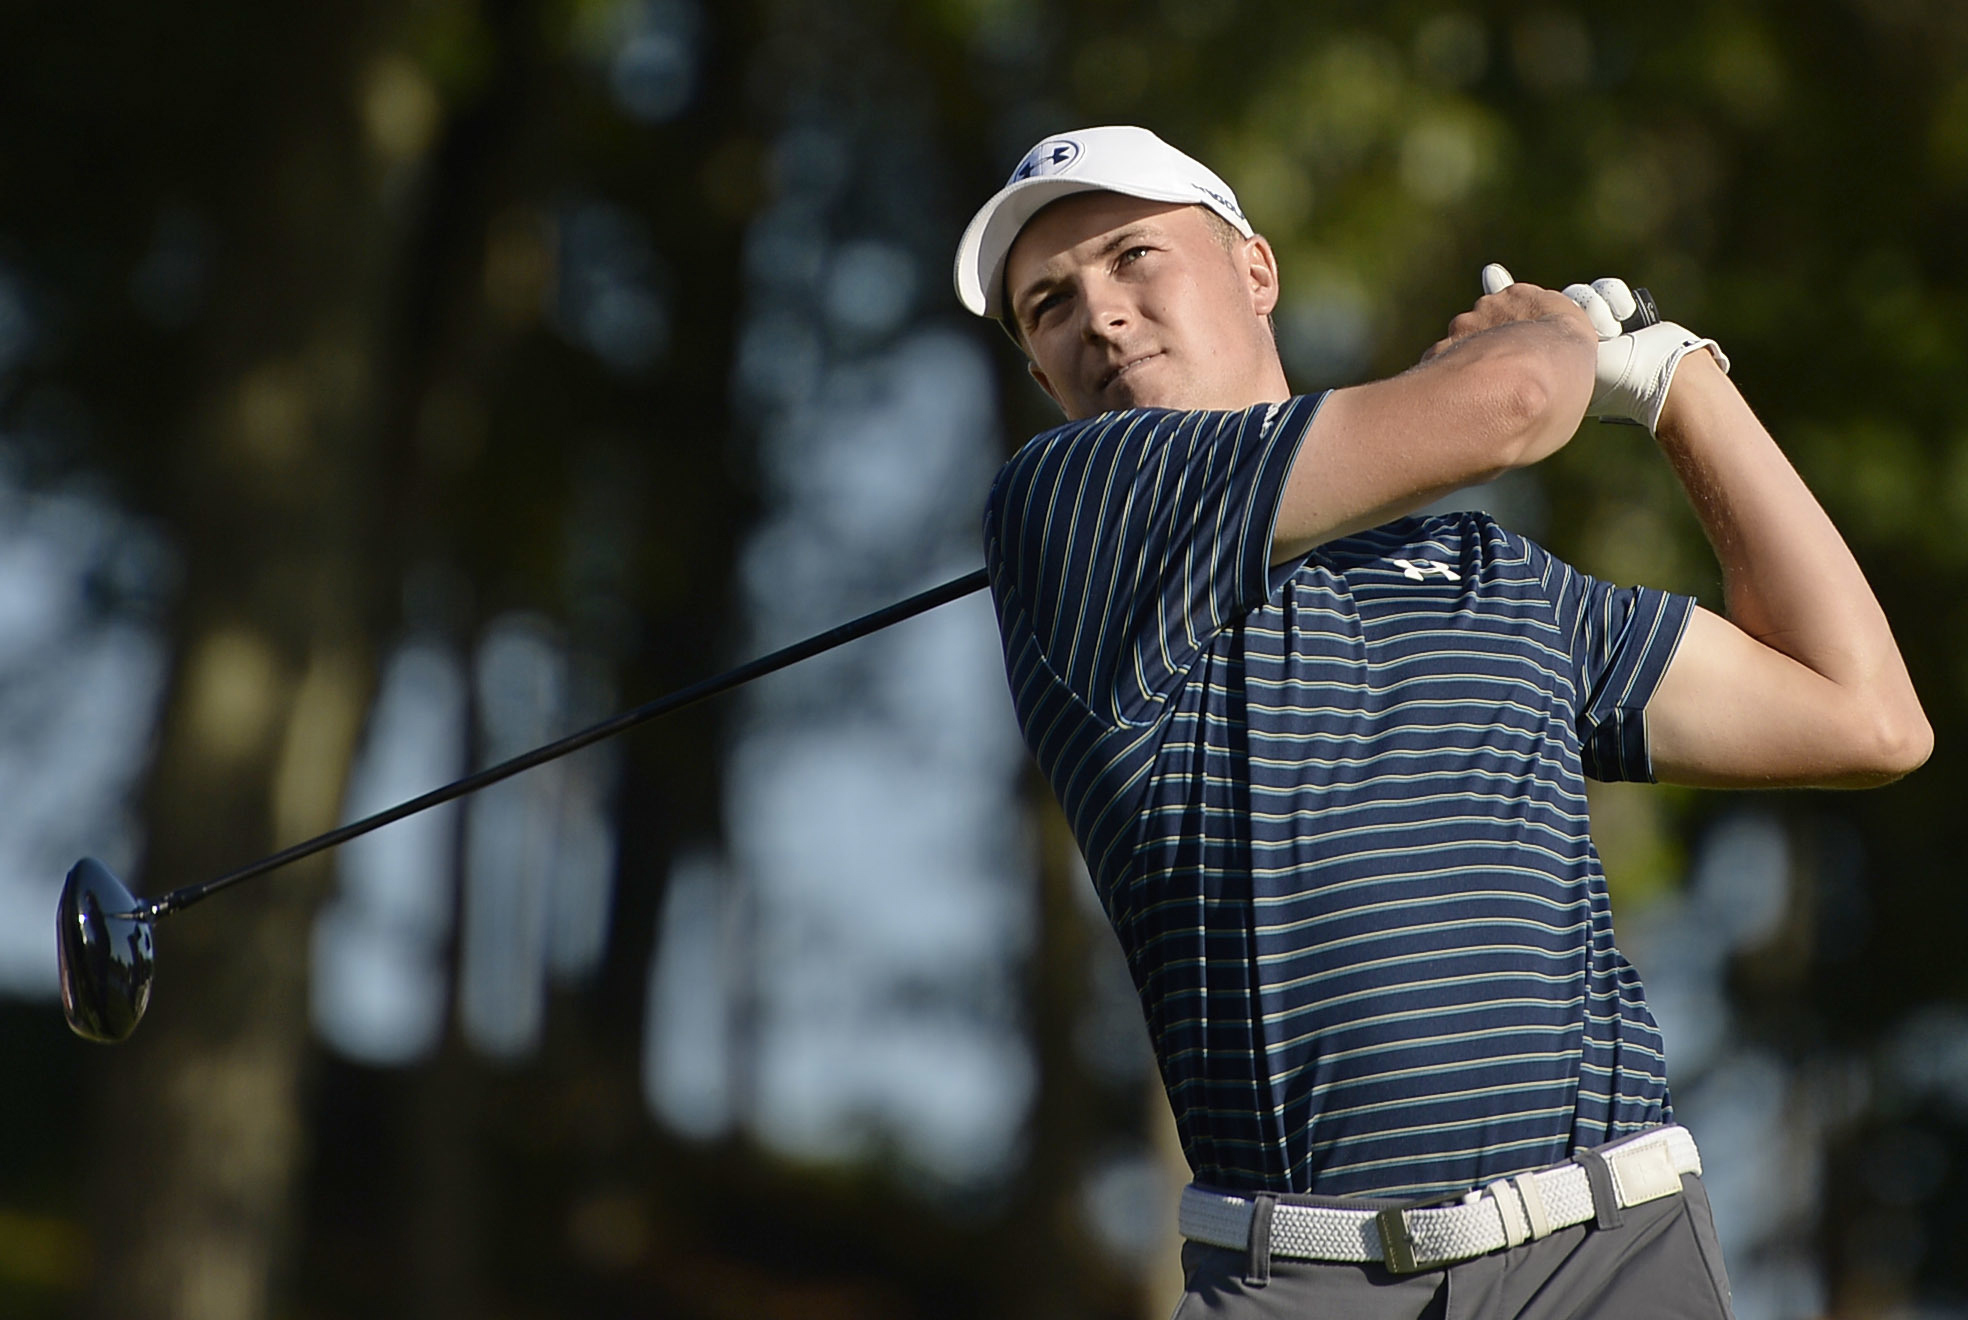 FILE - In a Sunday, June 25, 2017 file photo, Jordan Spieth hits off the 18th tee during a playoff in the final round of the Travelers Championship golf tournament, in Cromwell, Conn. Spieth says he wants to build a reputation for being a good closer in g